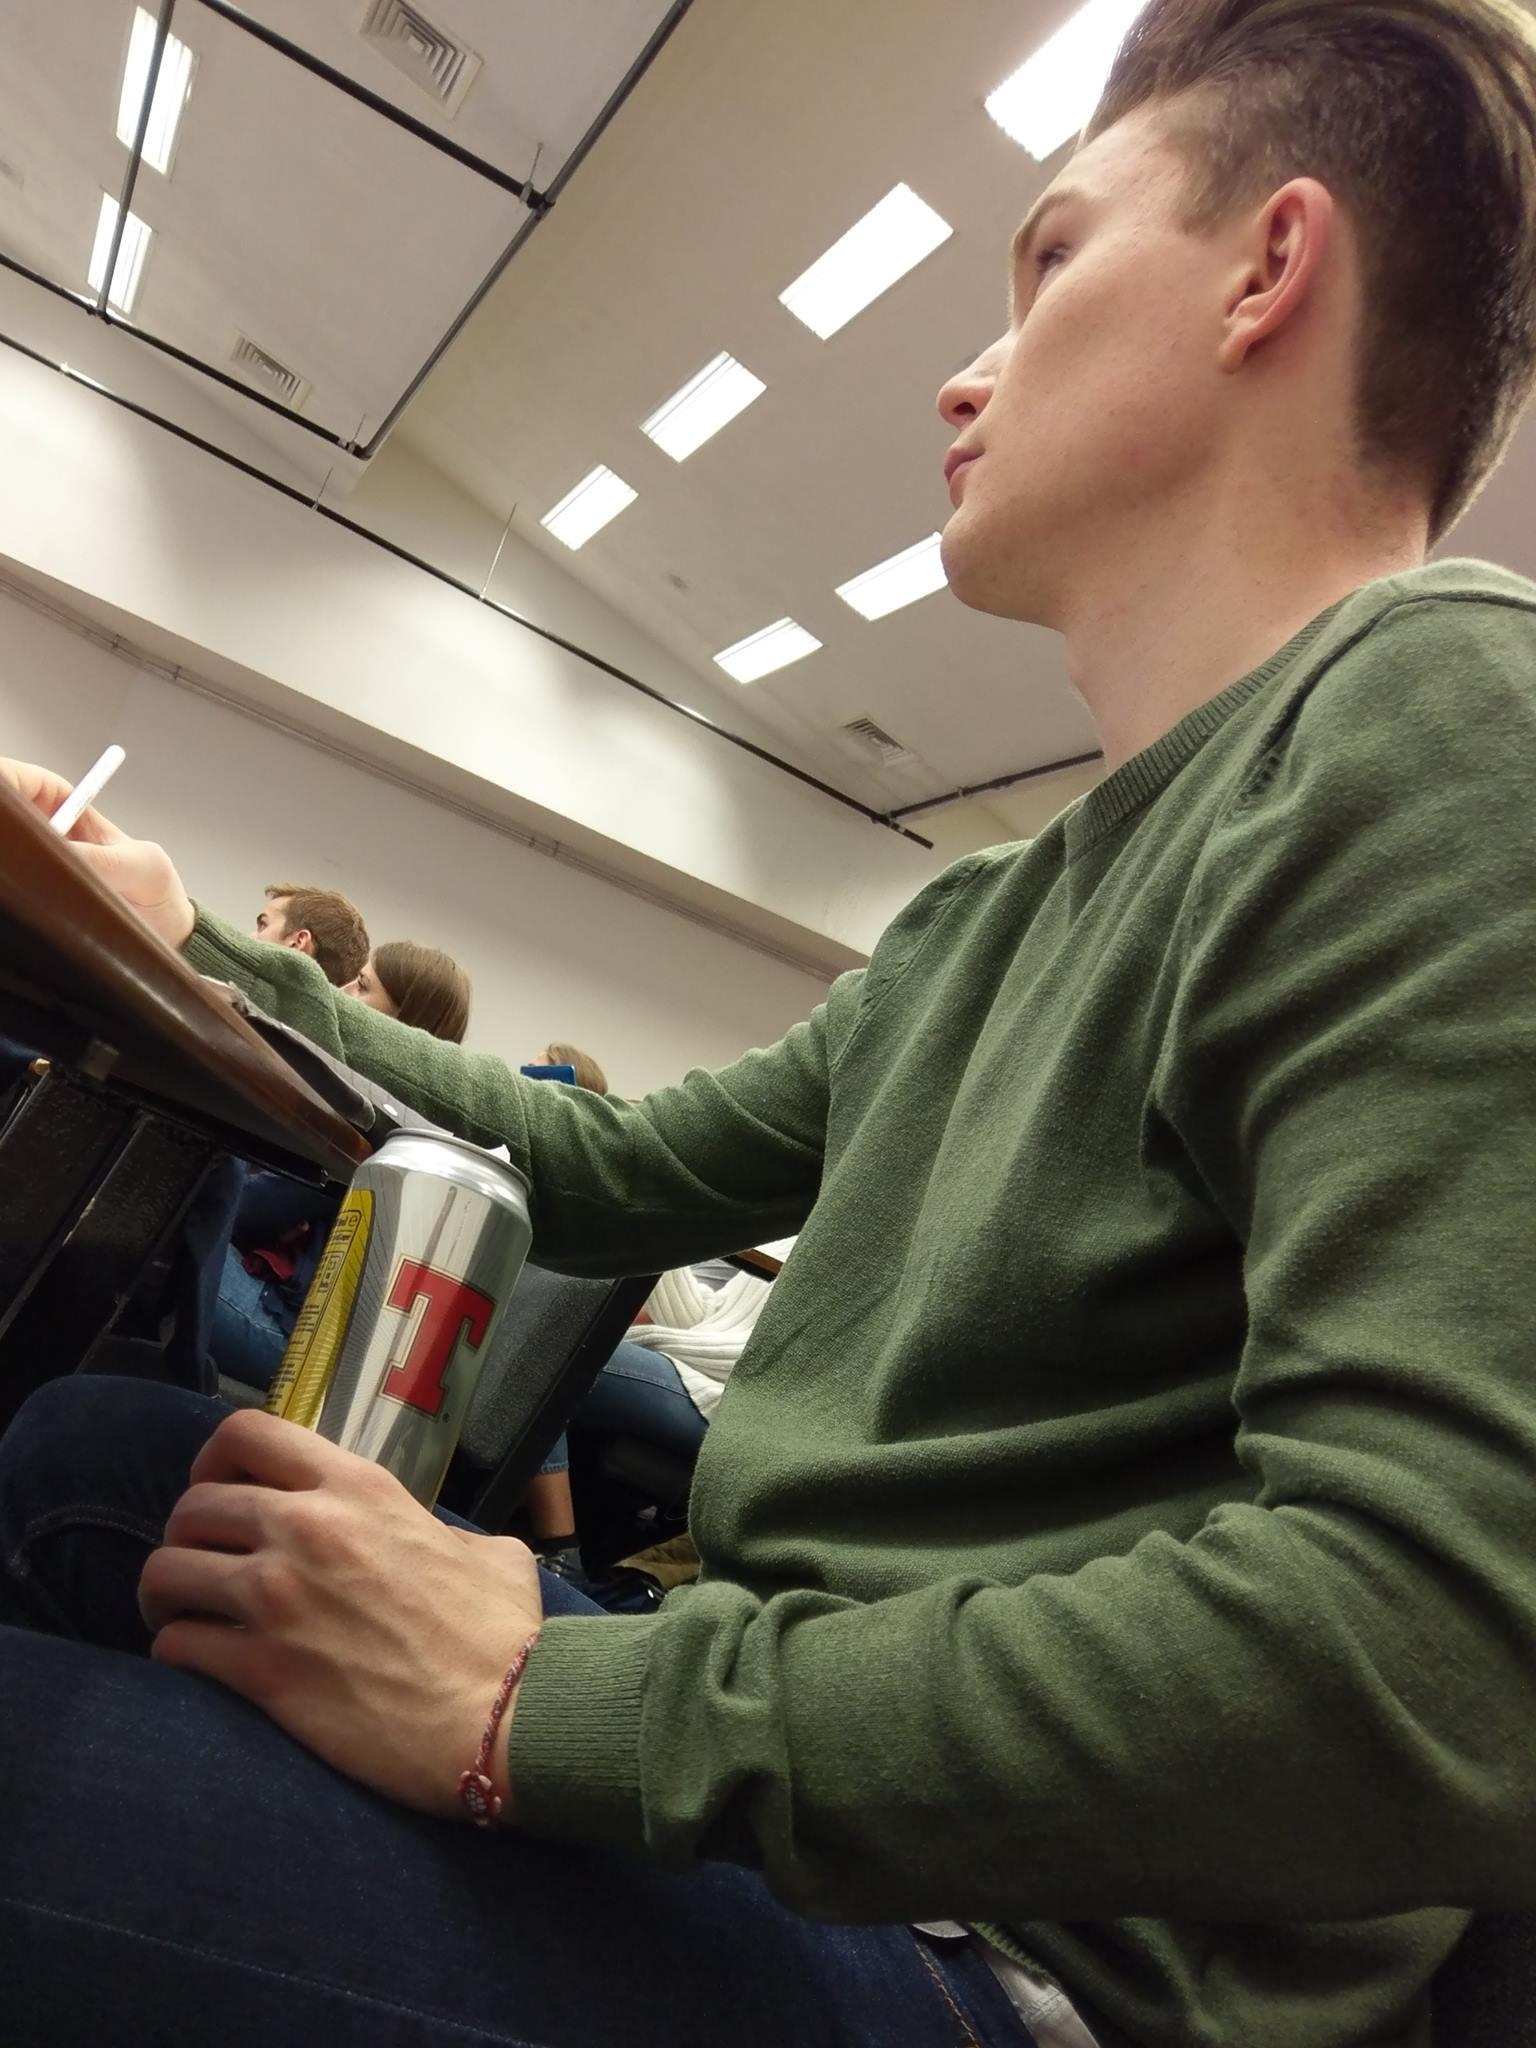 You could even get away with drinking in the lecture